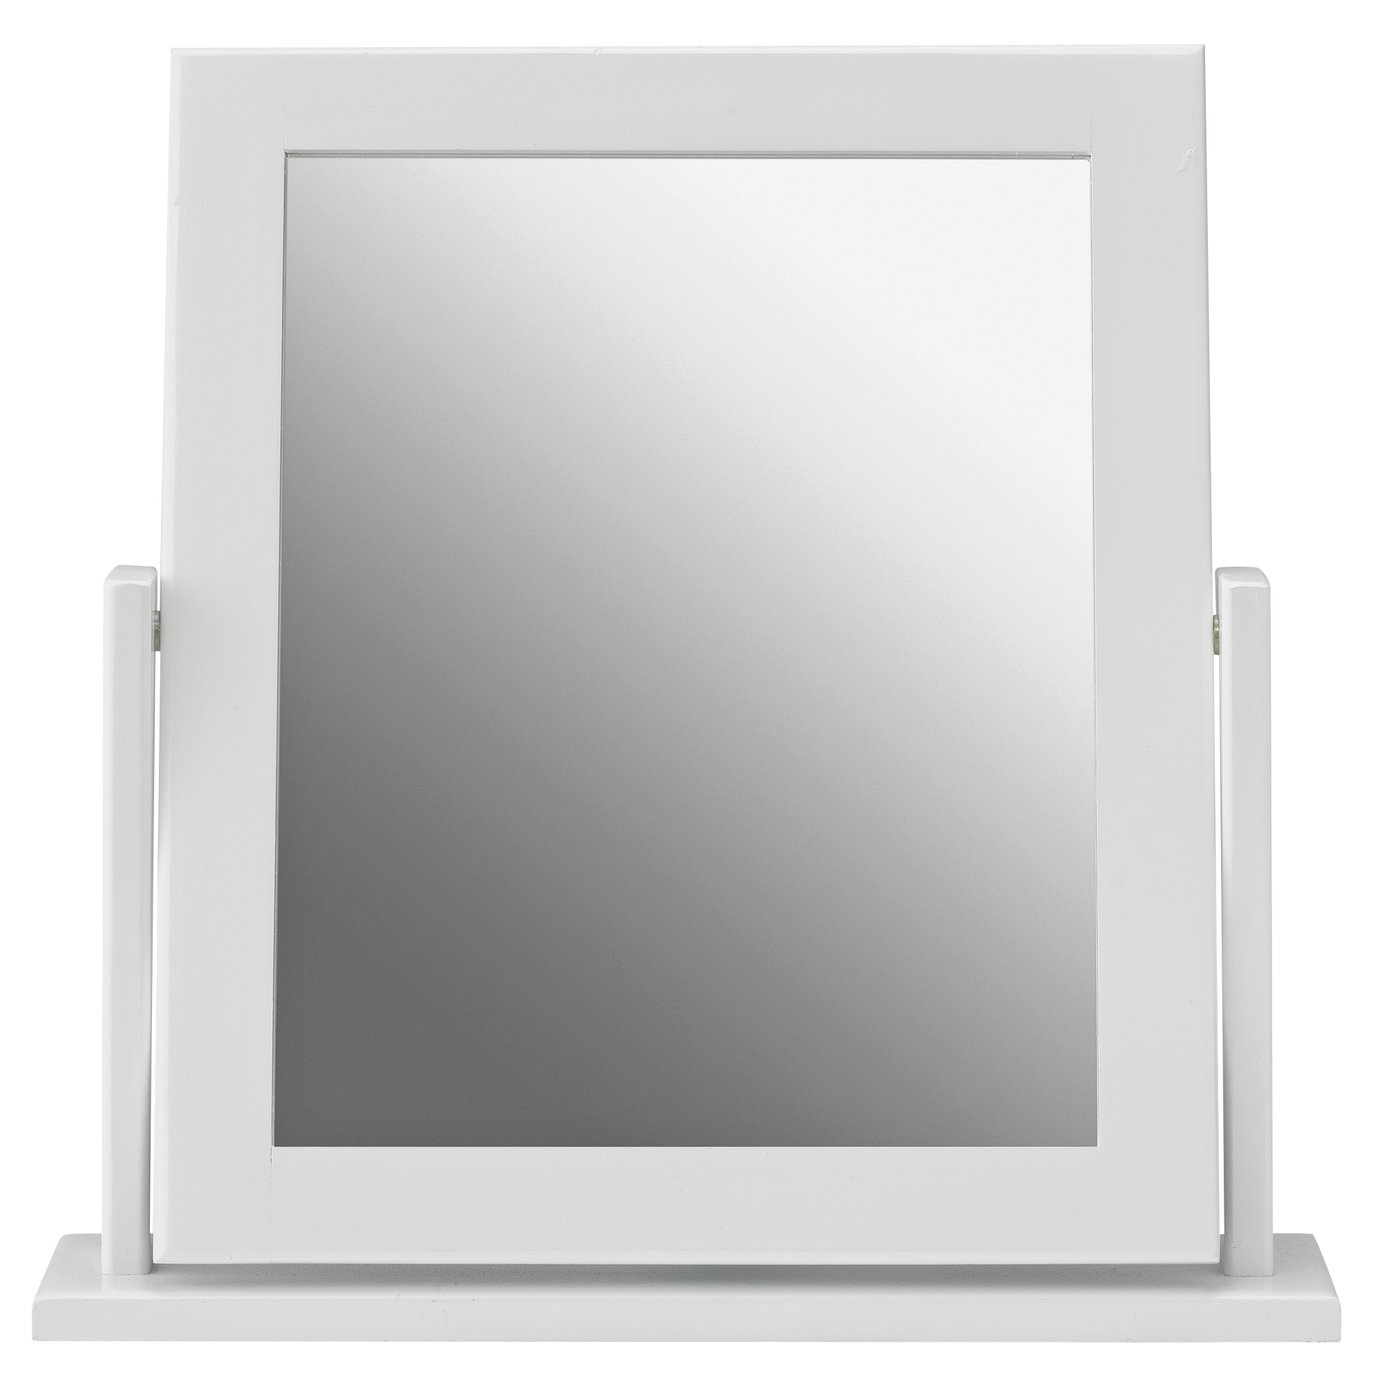 Home Square Dressing Table Mirror White 163 16 99 Gay Times